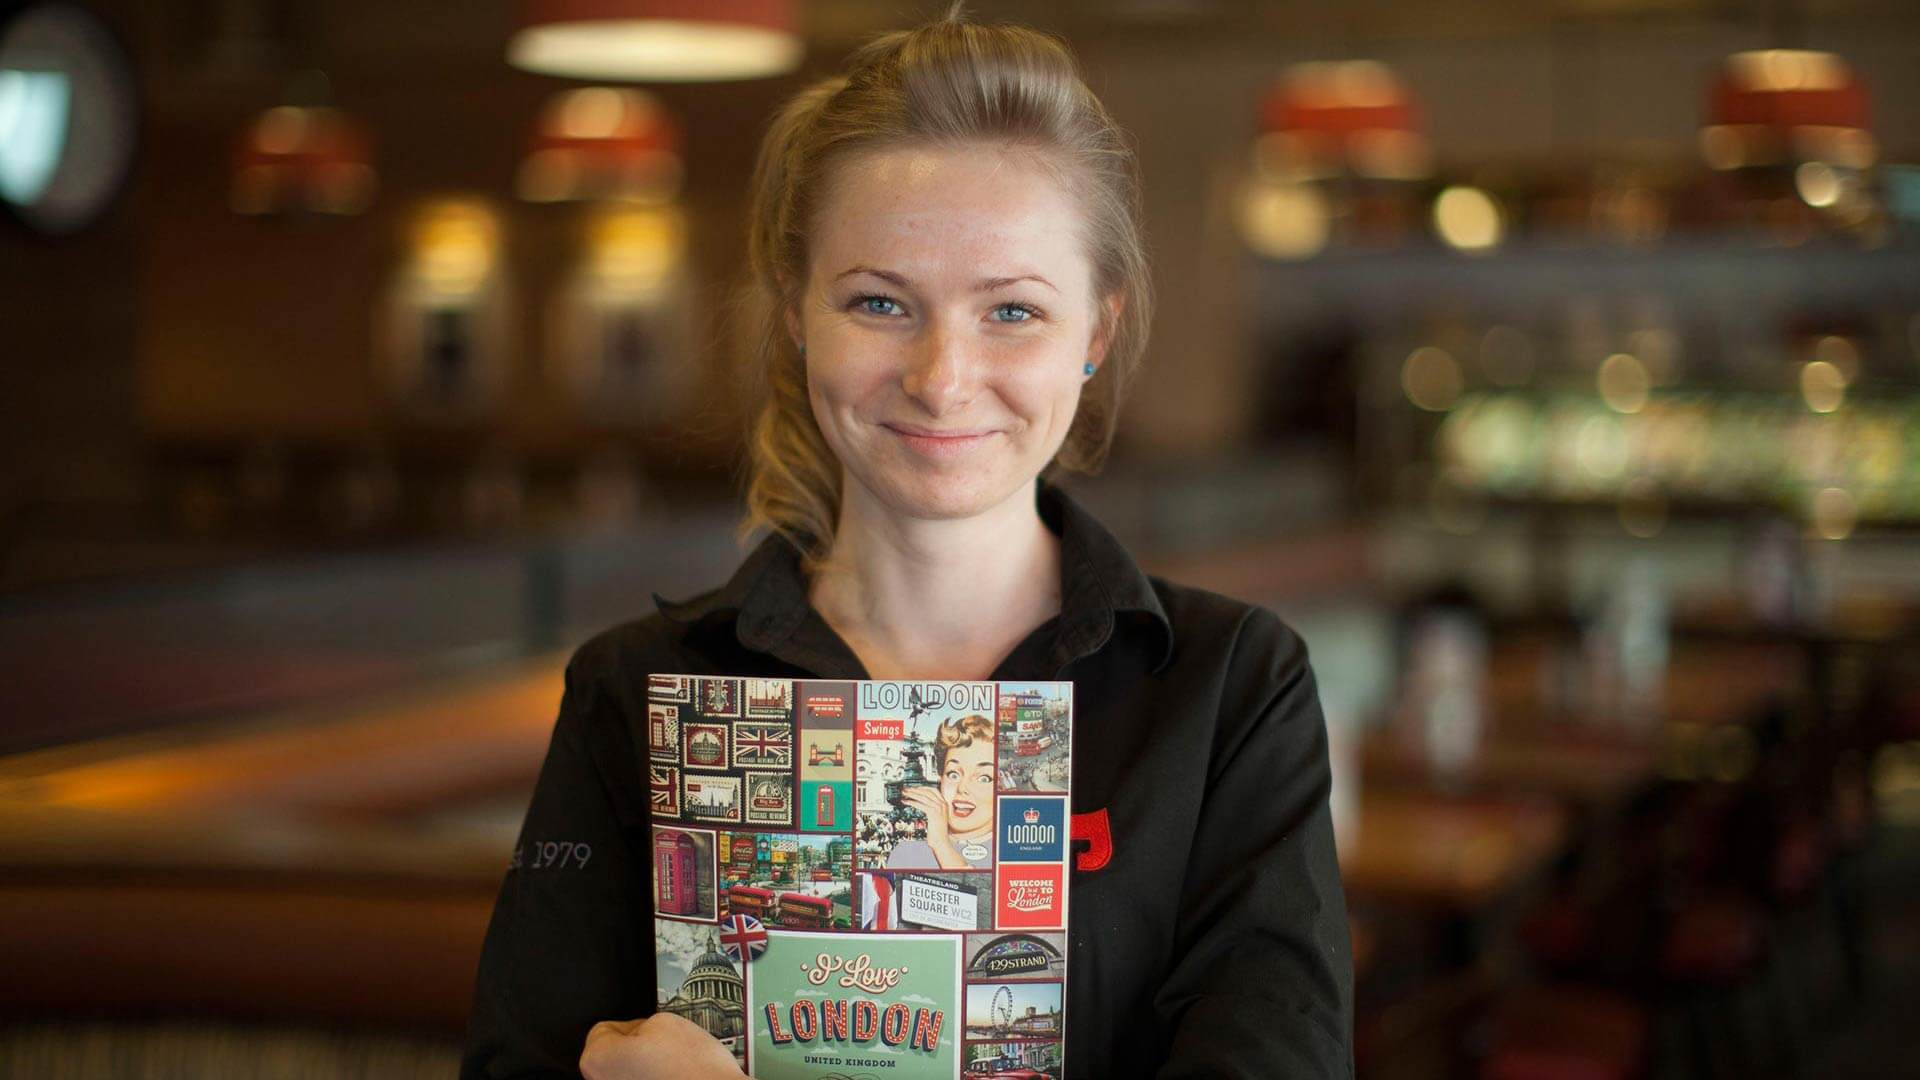 garfunkels waitress holding menu